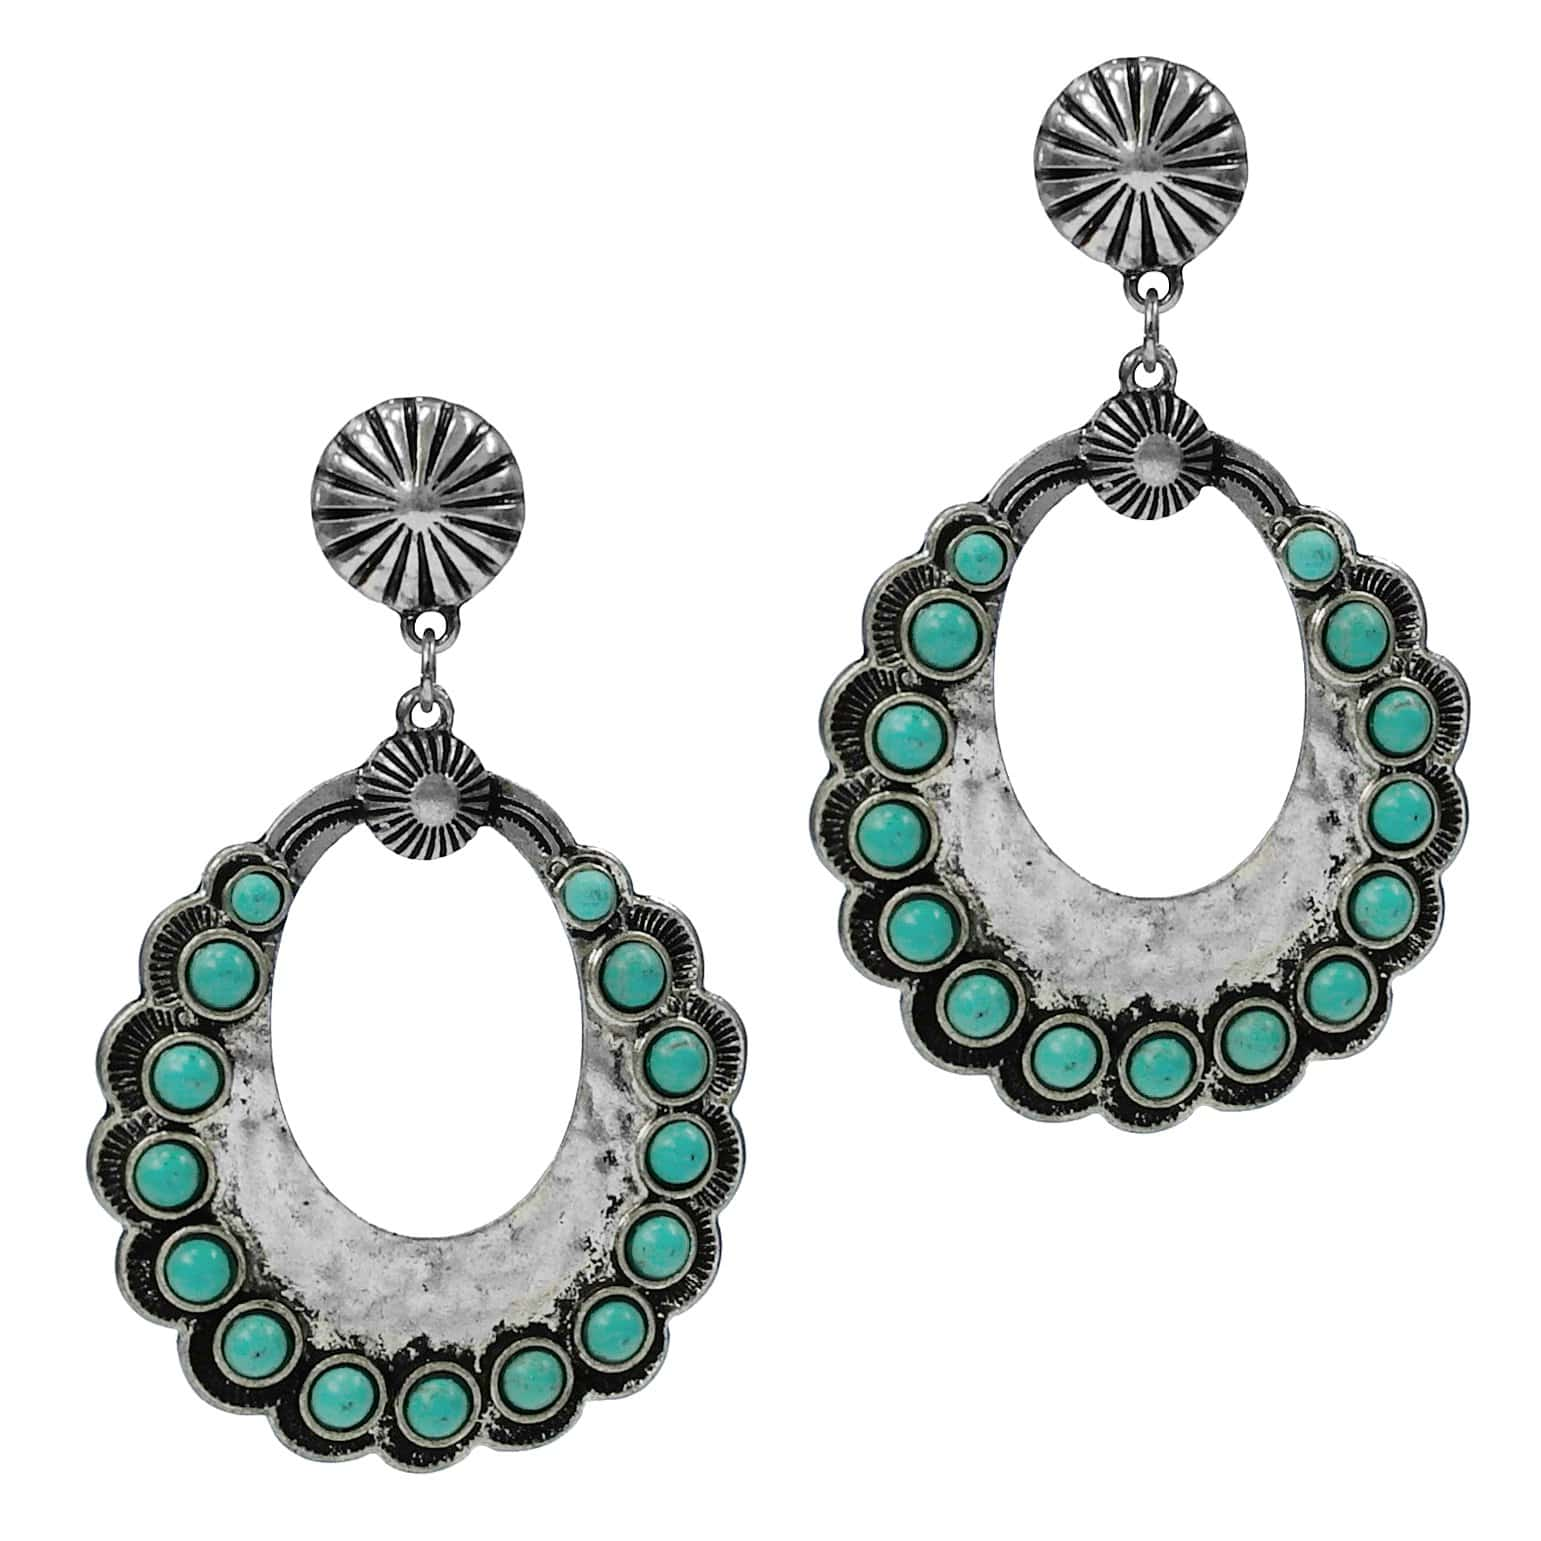 0022BOS Fashion Earrings Dakota Fashion Turquoise Silver Teardro Earrings